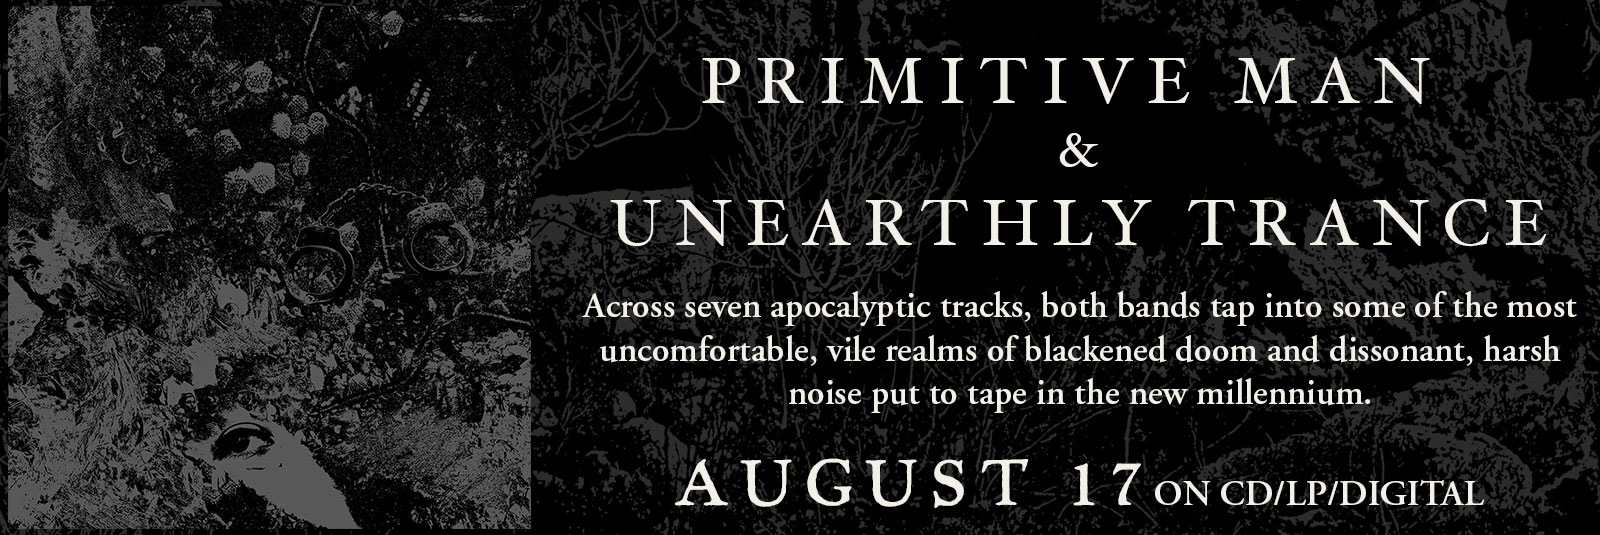 primitive-man-unearthly-trance-split-doom-metal-relapse-august-17